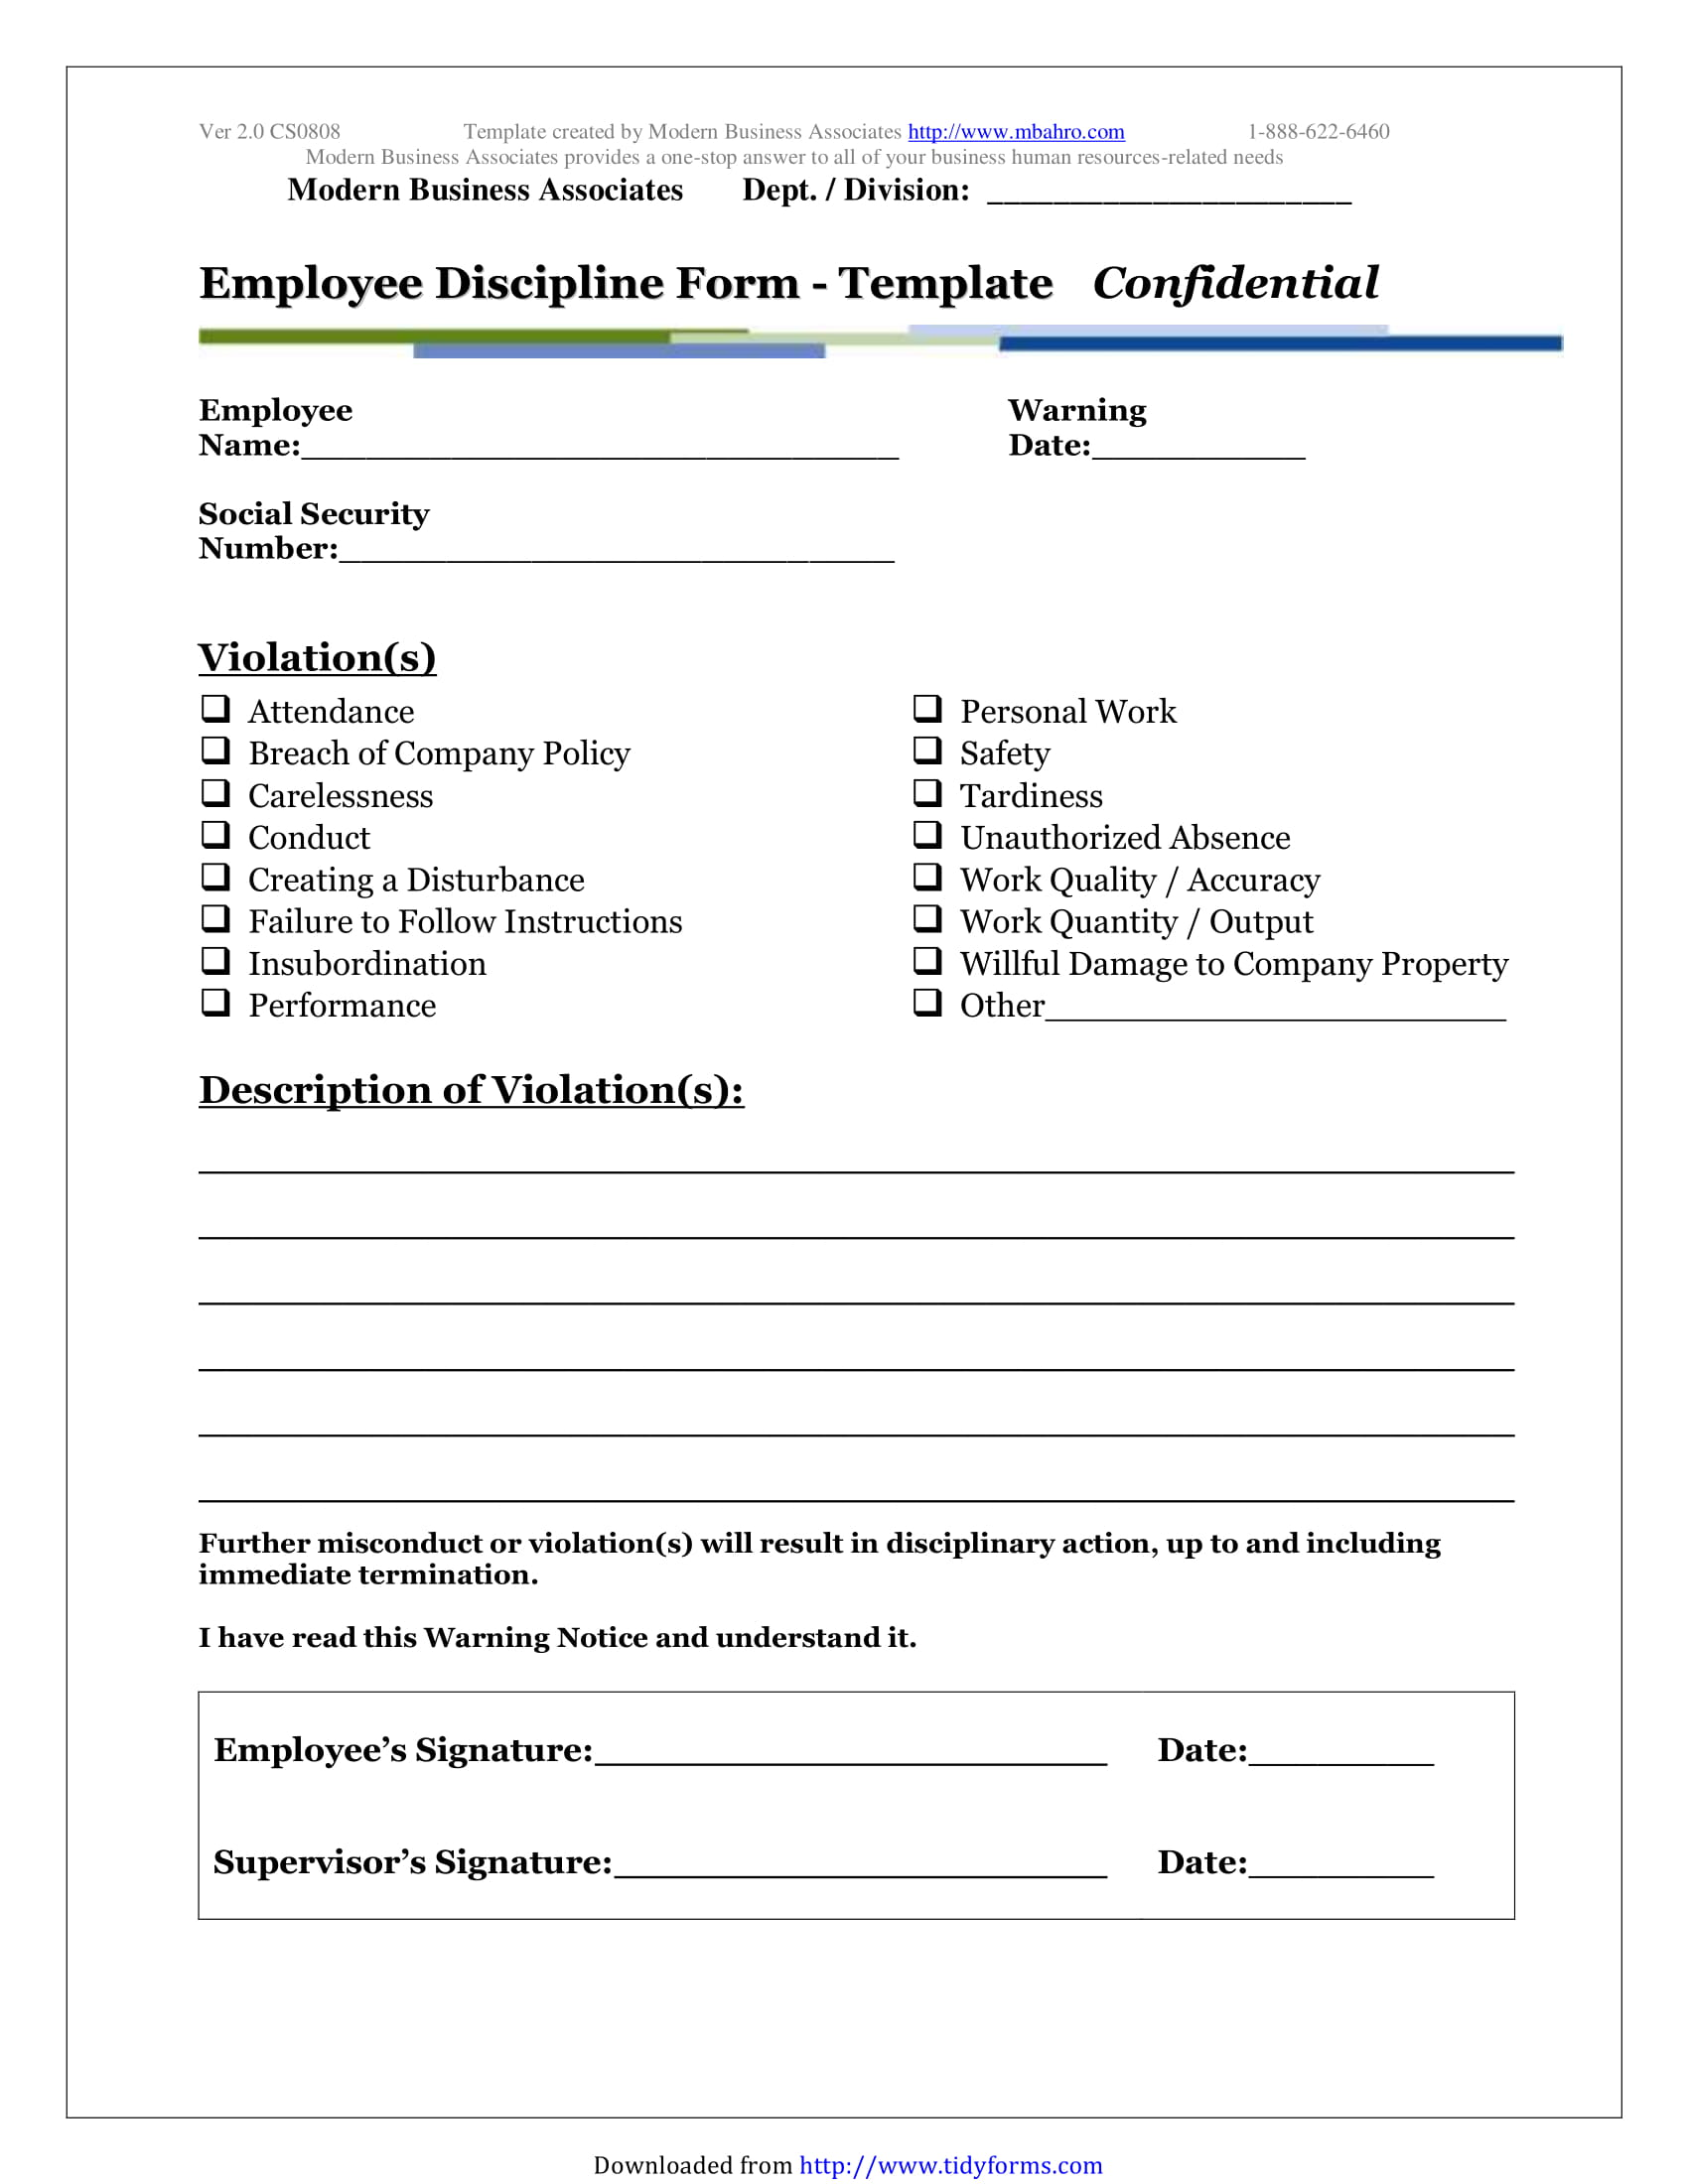 5 restaurant employee write up forms pdf written warning discipline